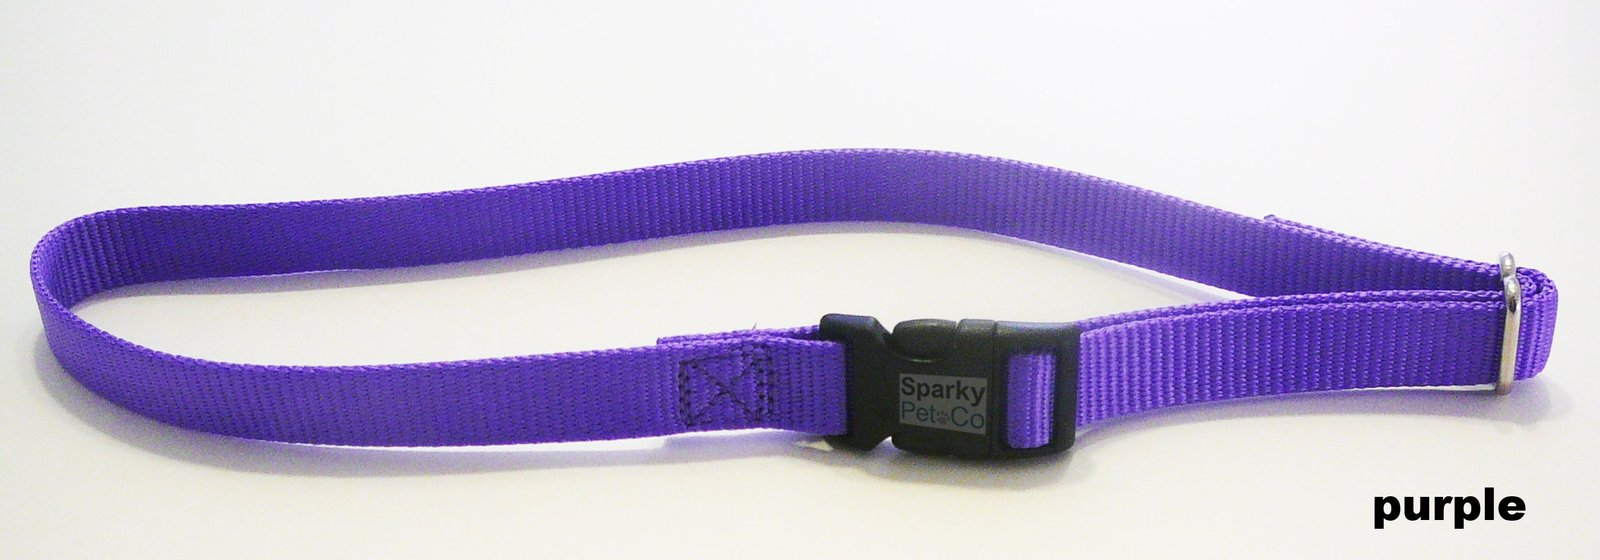 "Dog Fence Receiver Heavy Duty 1"" SOLID No Hole Nylon Replacement Strap, Lavender"